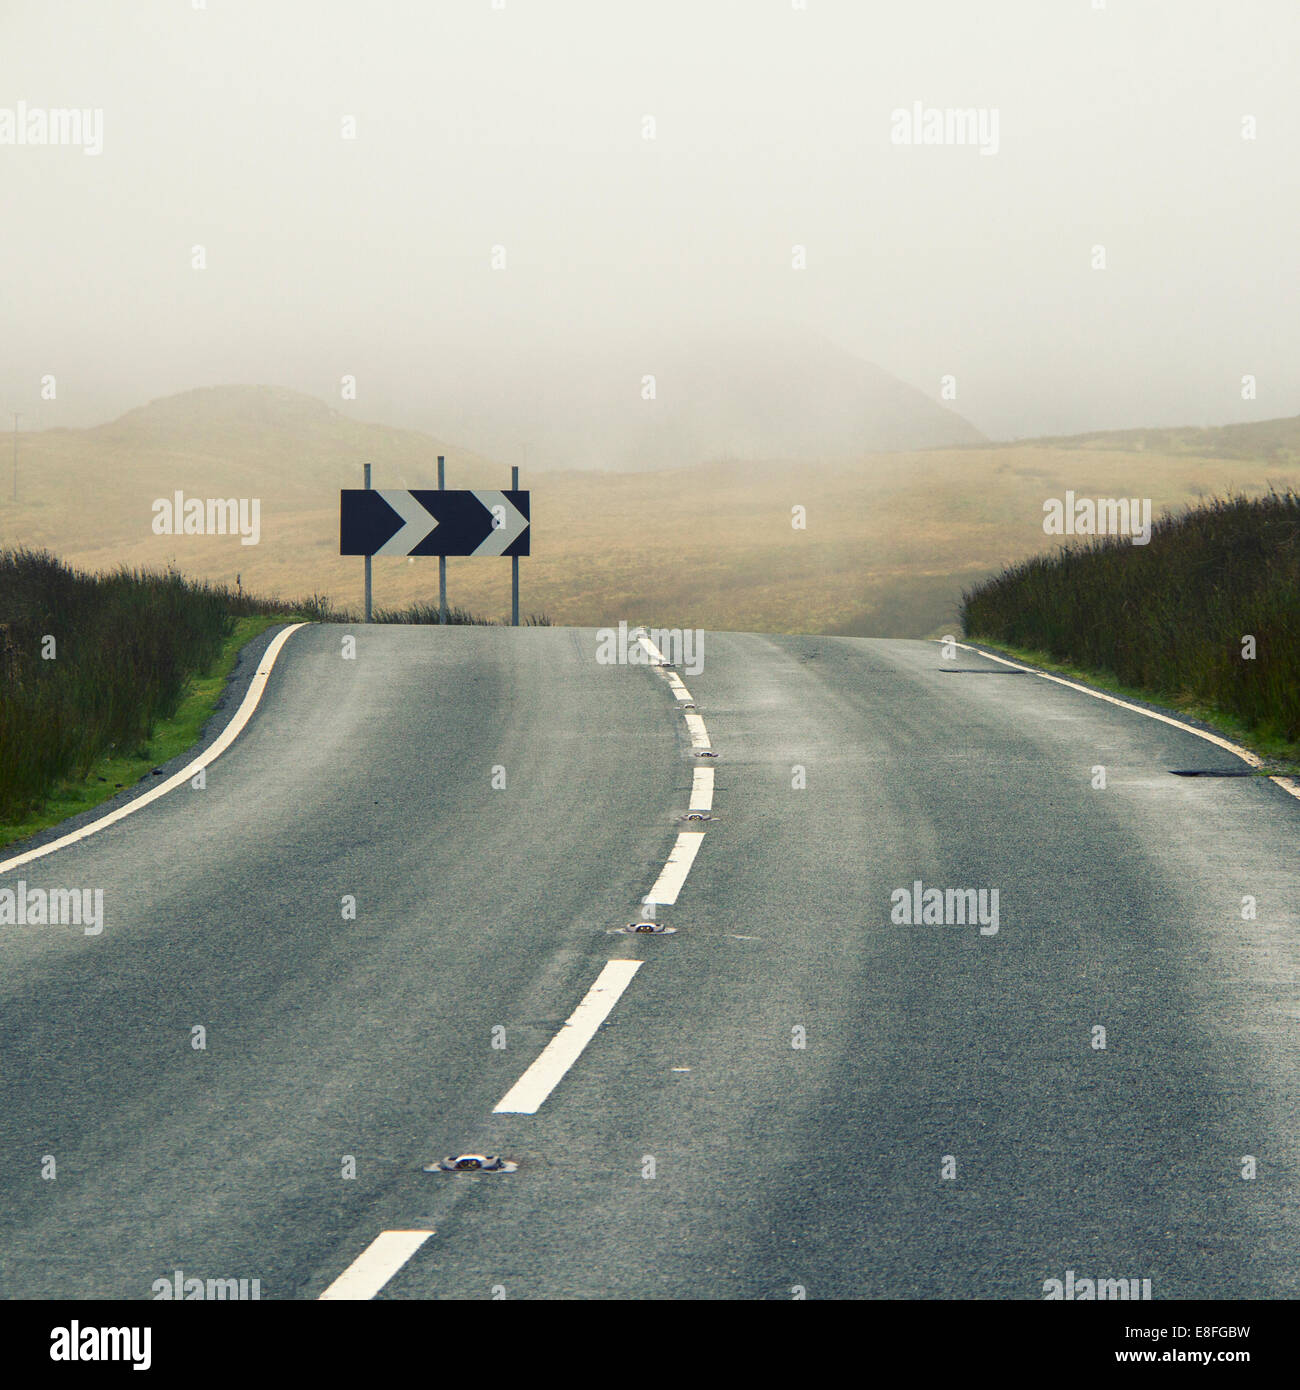 Curved road - Stock Image